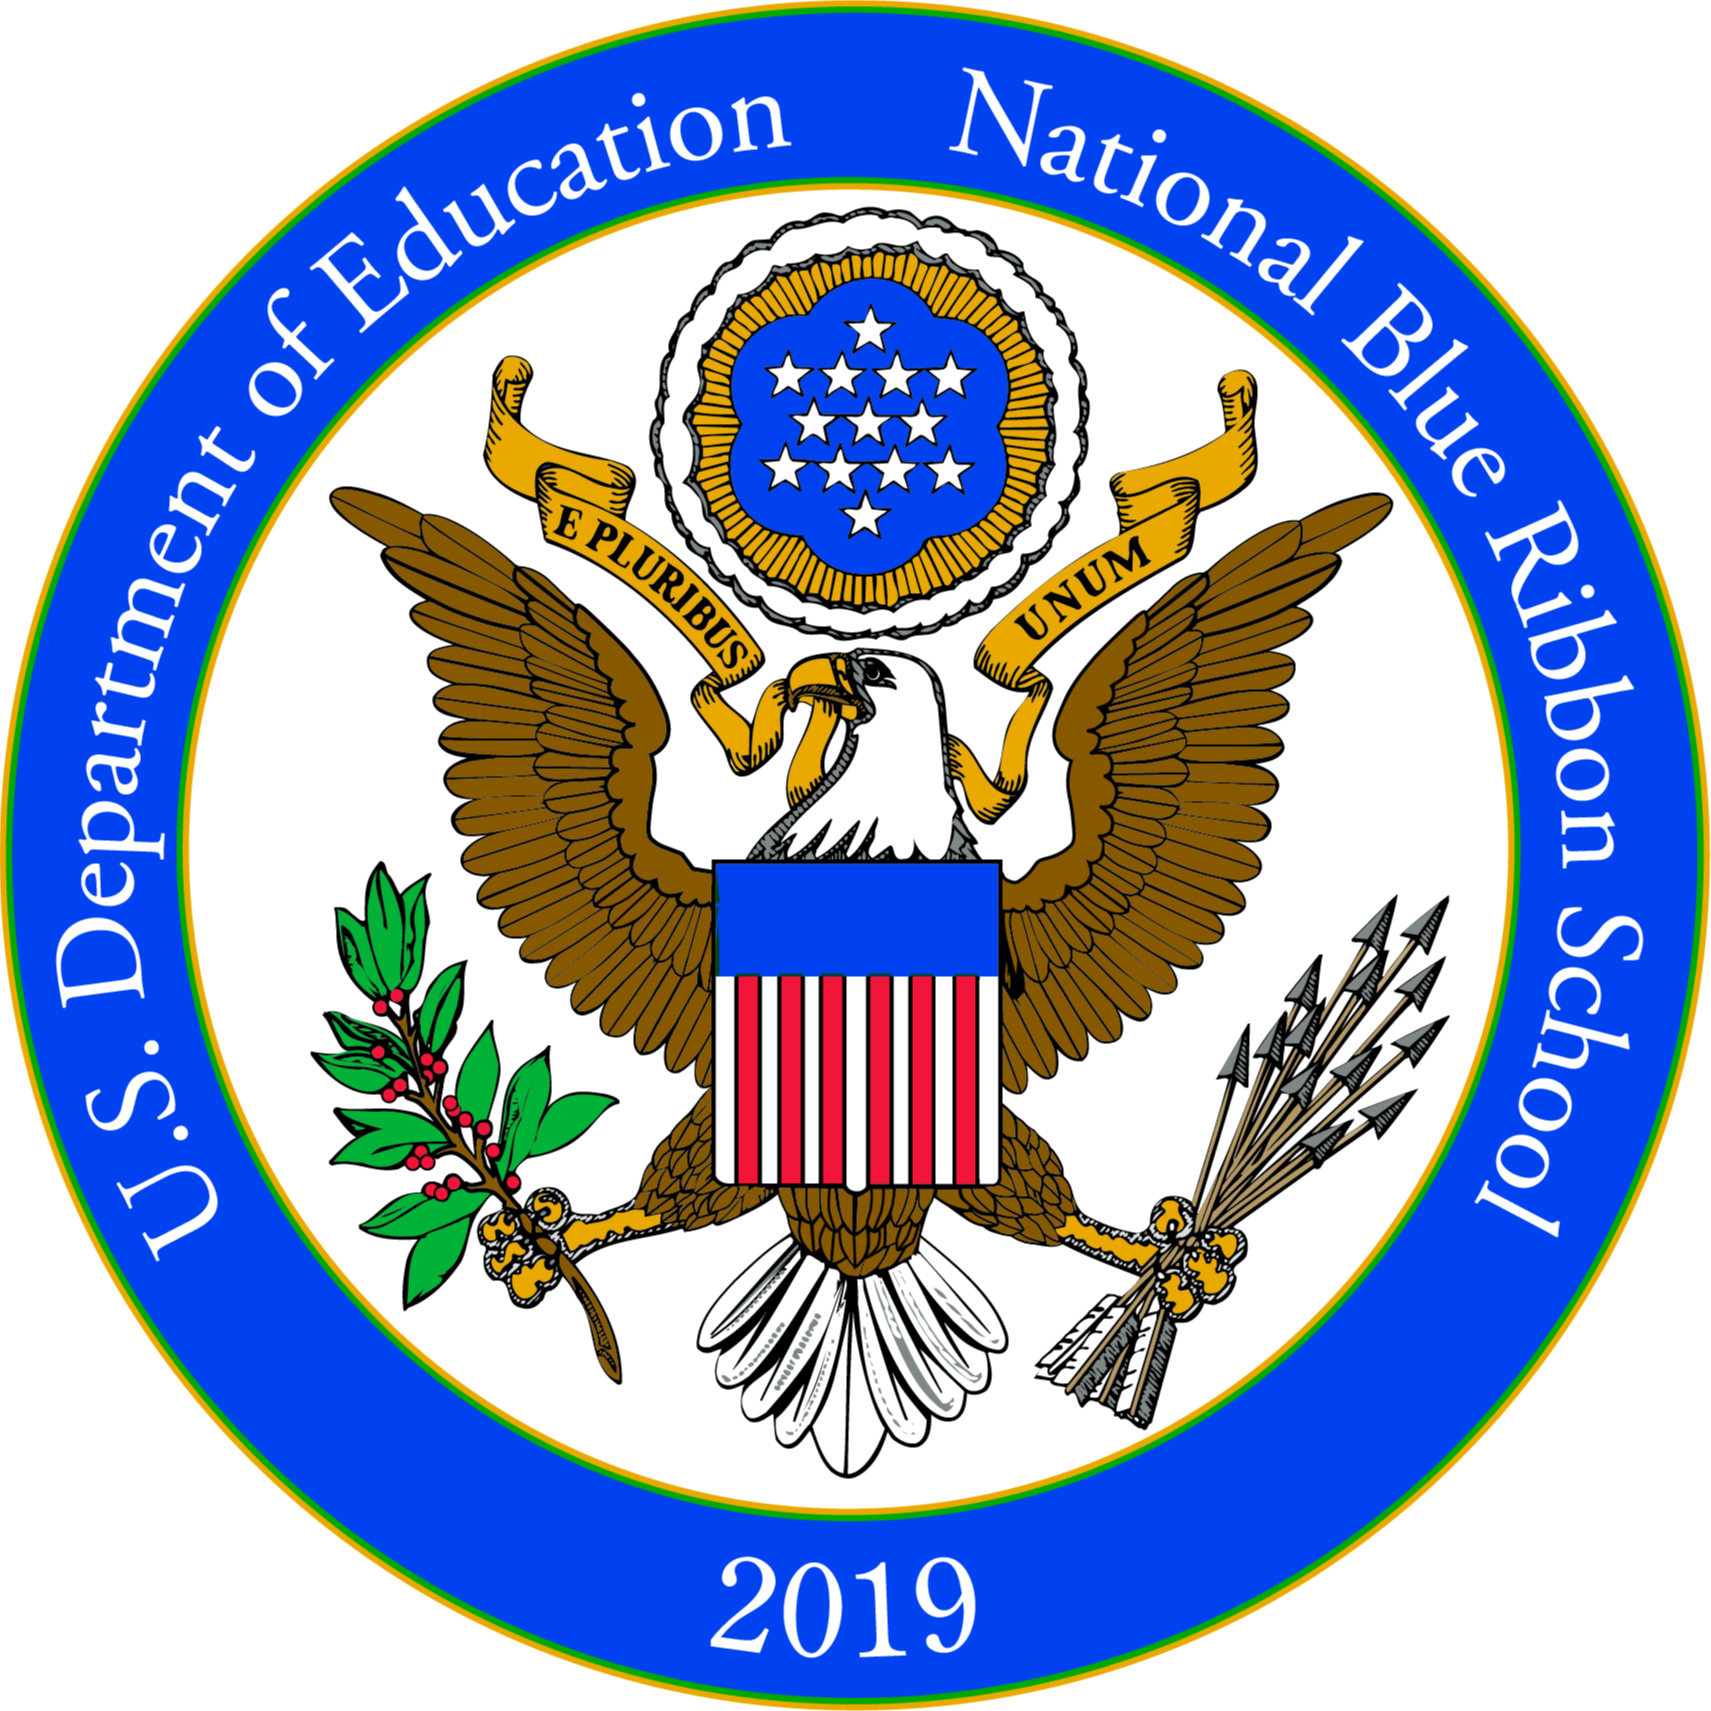 U.S. Department of Education National Blue Ribbon School 2019